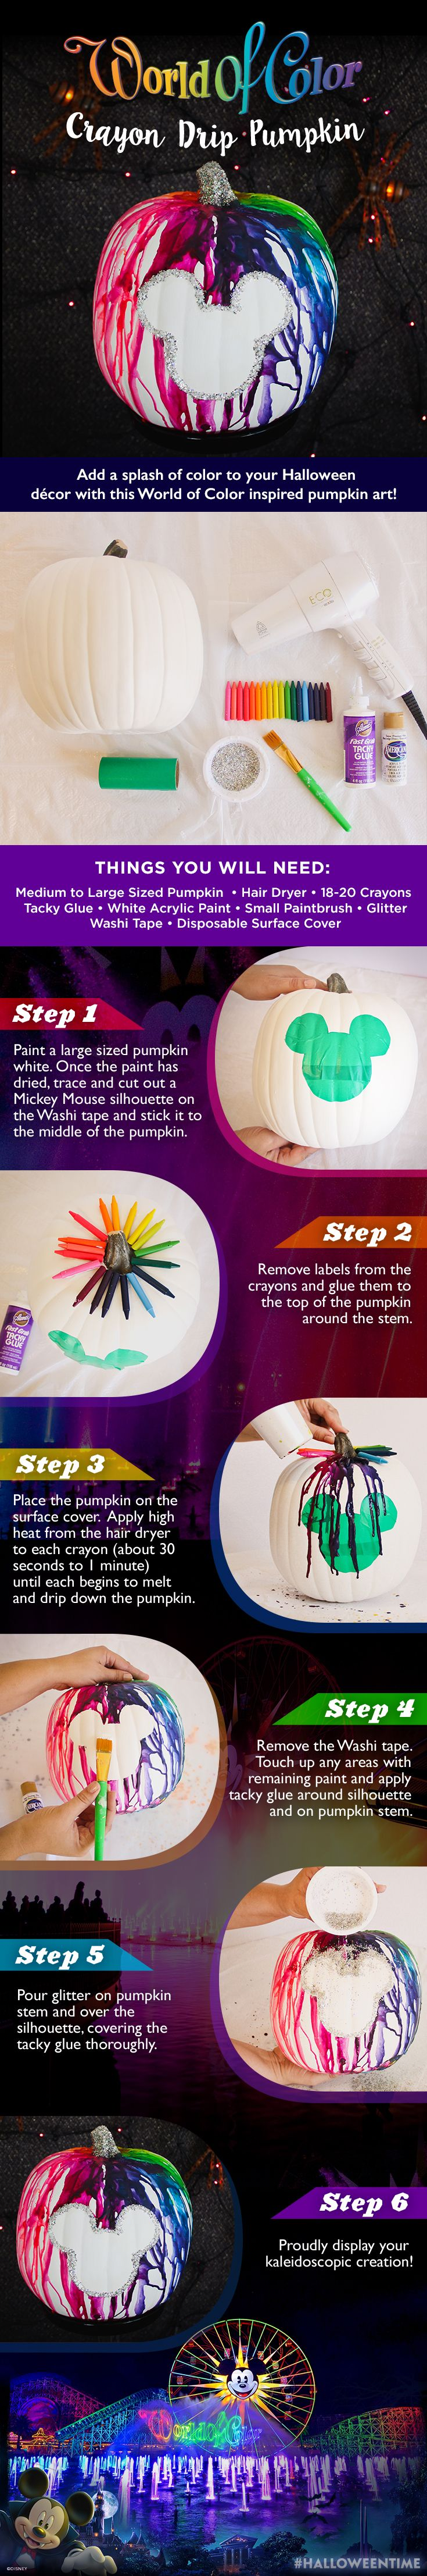 The world is a carousel of color, and now your Halloween pumpkin can be too with this DIY World of Color inspired pumpkin art!